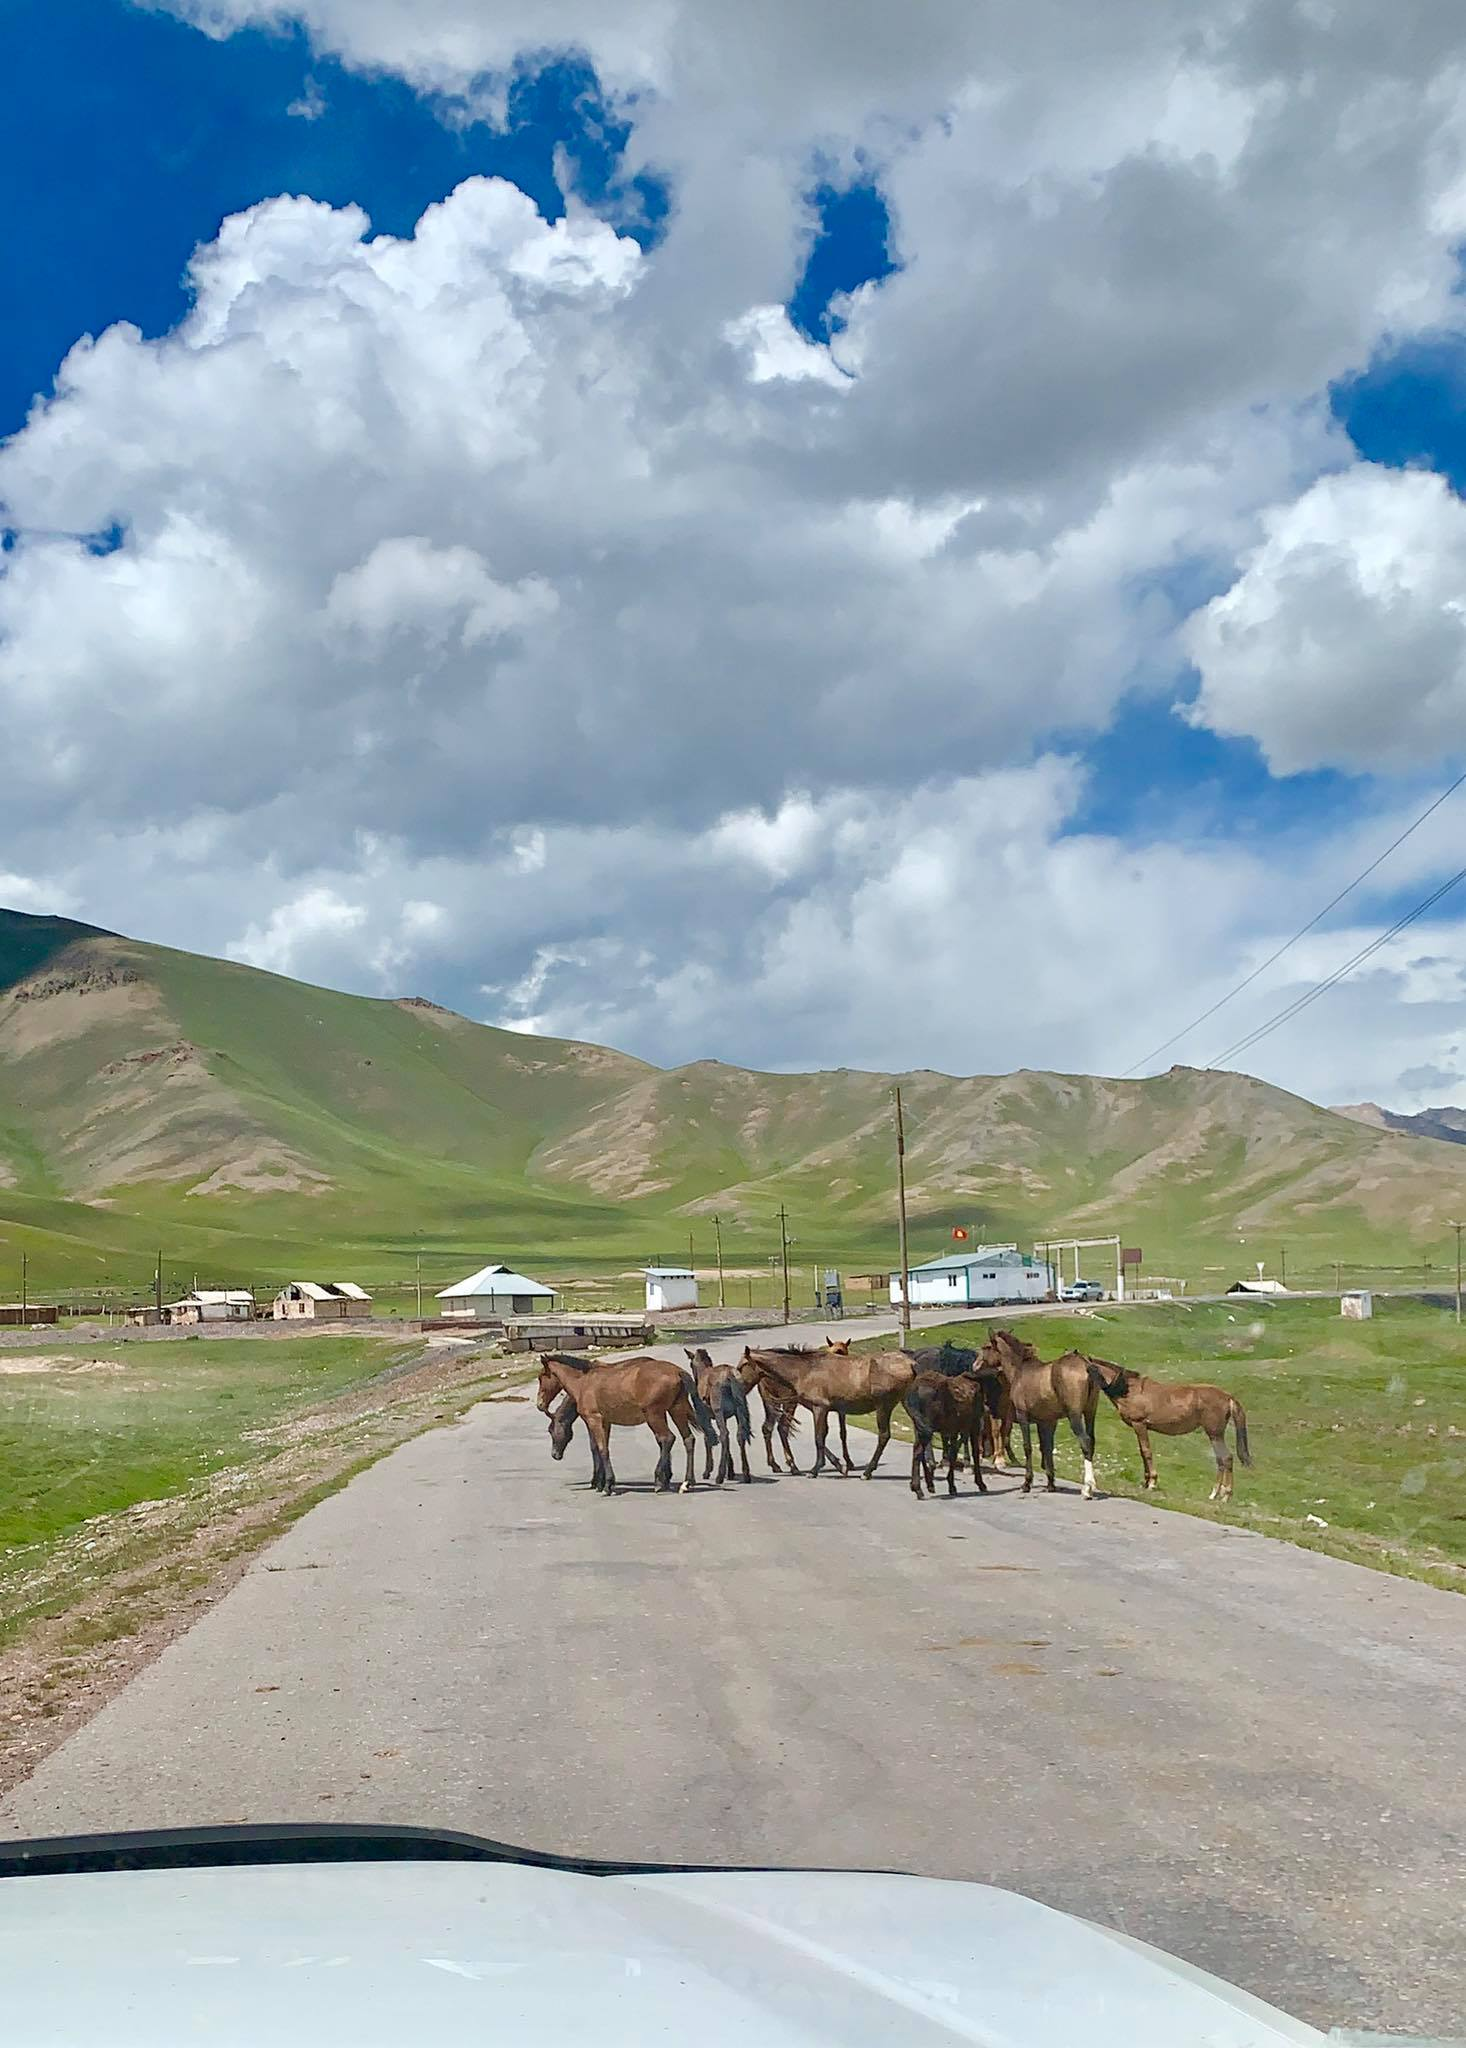 Kach Solo Travels in 2019 Hello from KYRGYZSTAN, my 128th country9.jpg